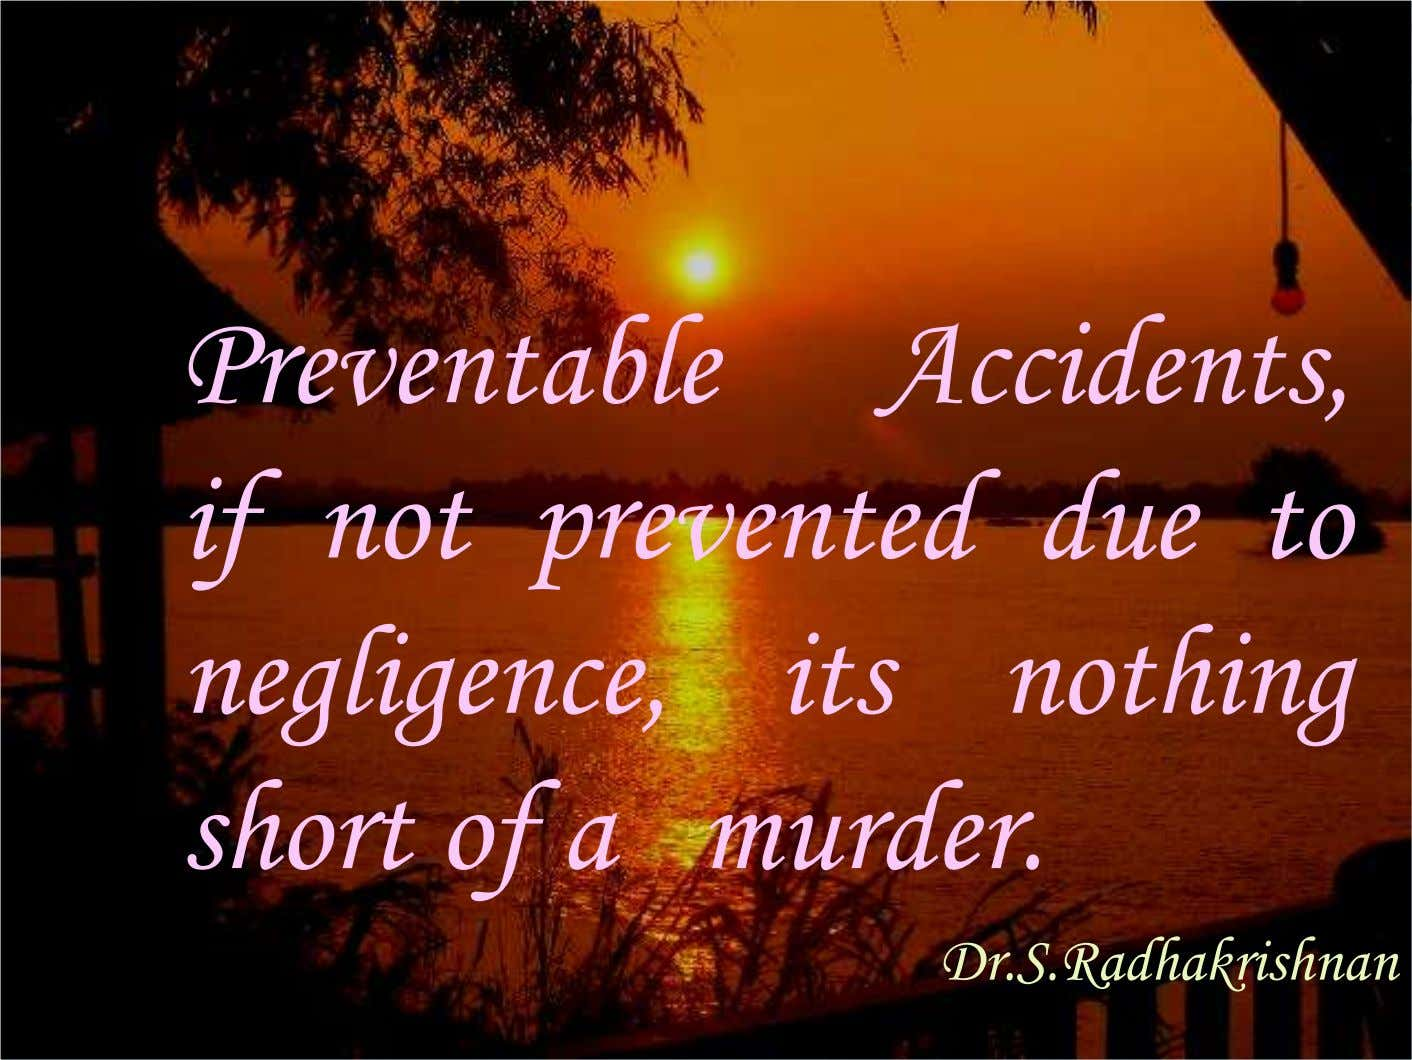 Preventable Accidents, if not prevented due to negligence, its nothing short of a murder. Dr.S.Radhakrishnan